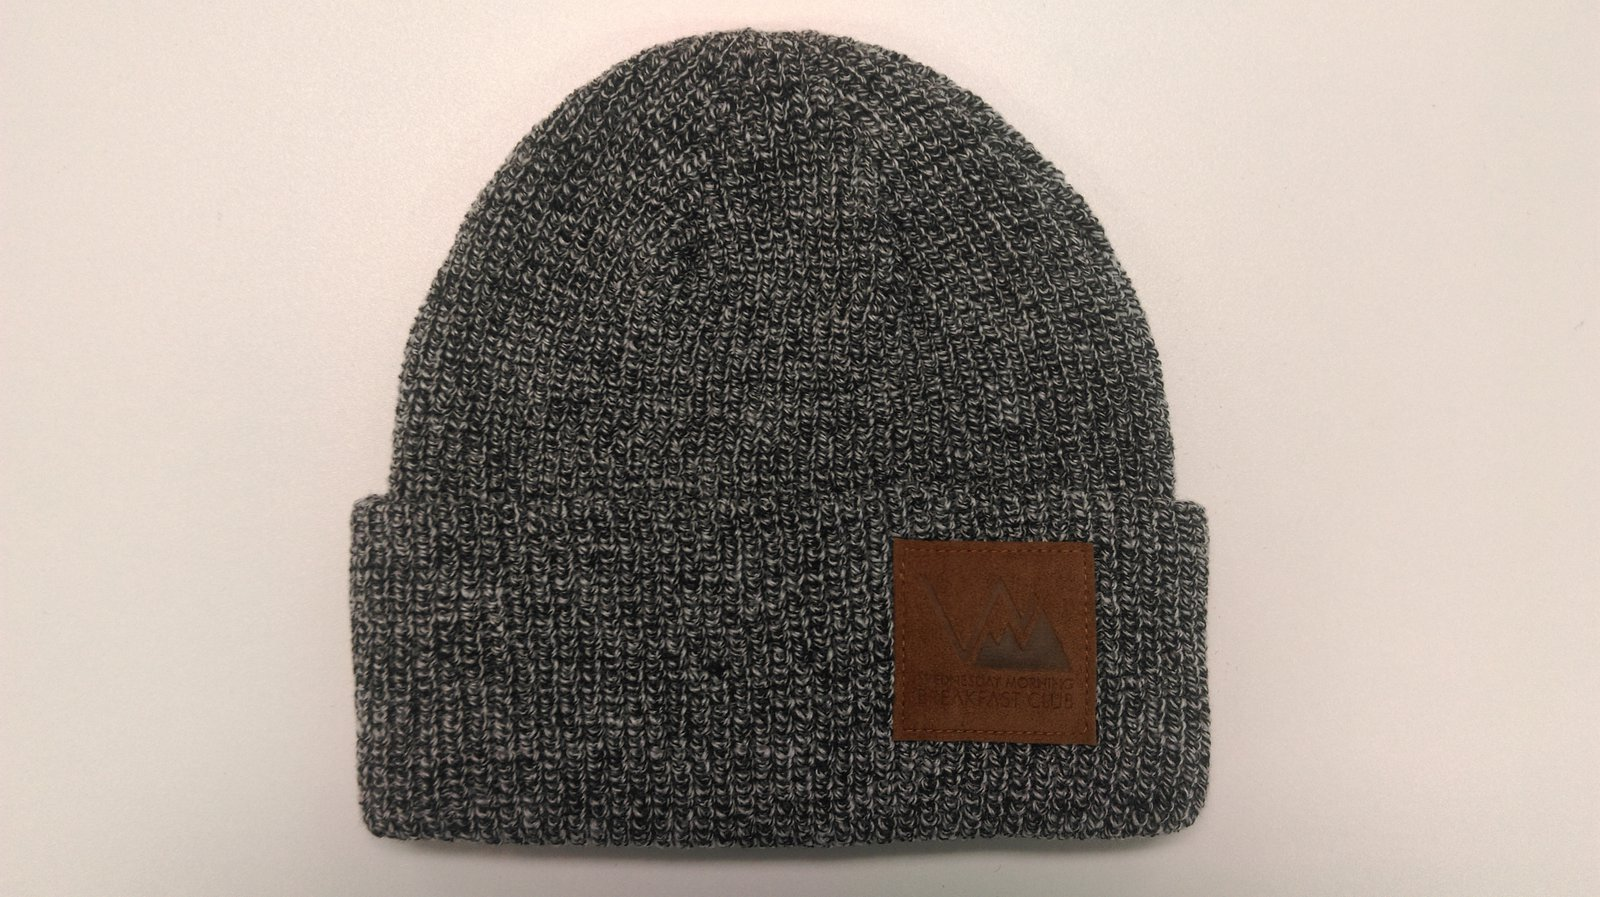 The Roc De Fer Beanie